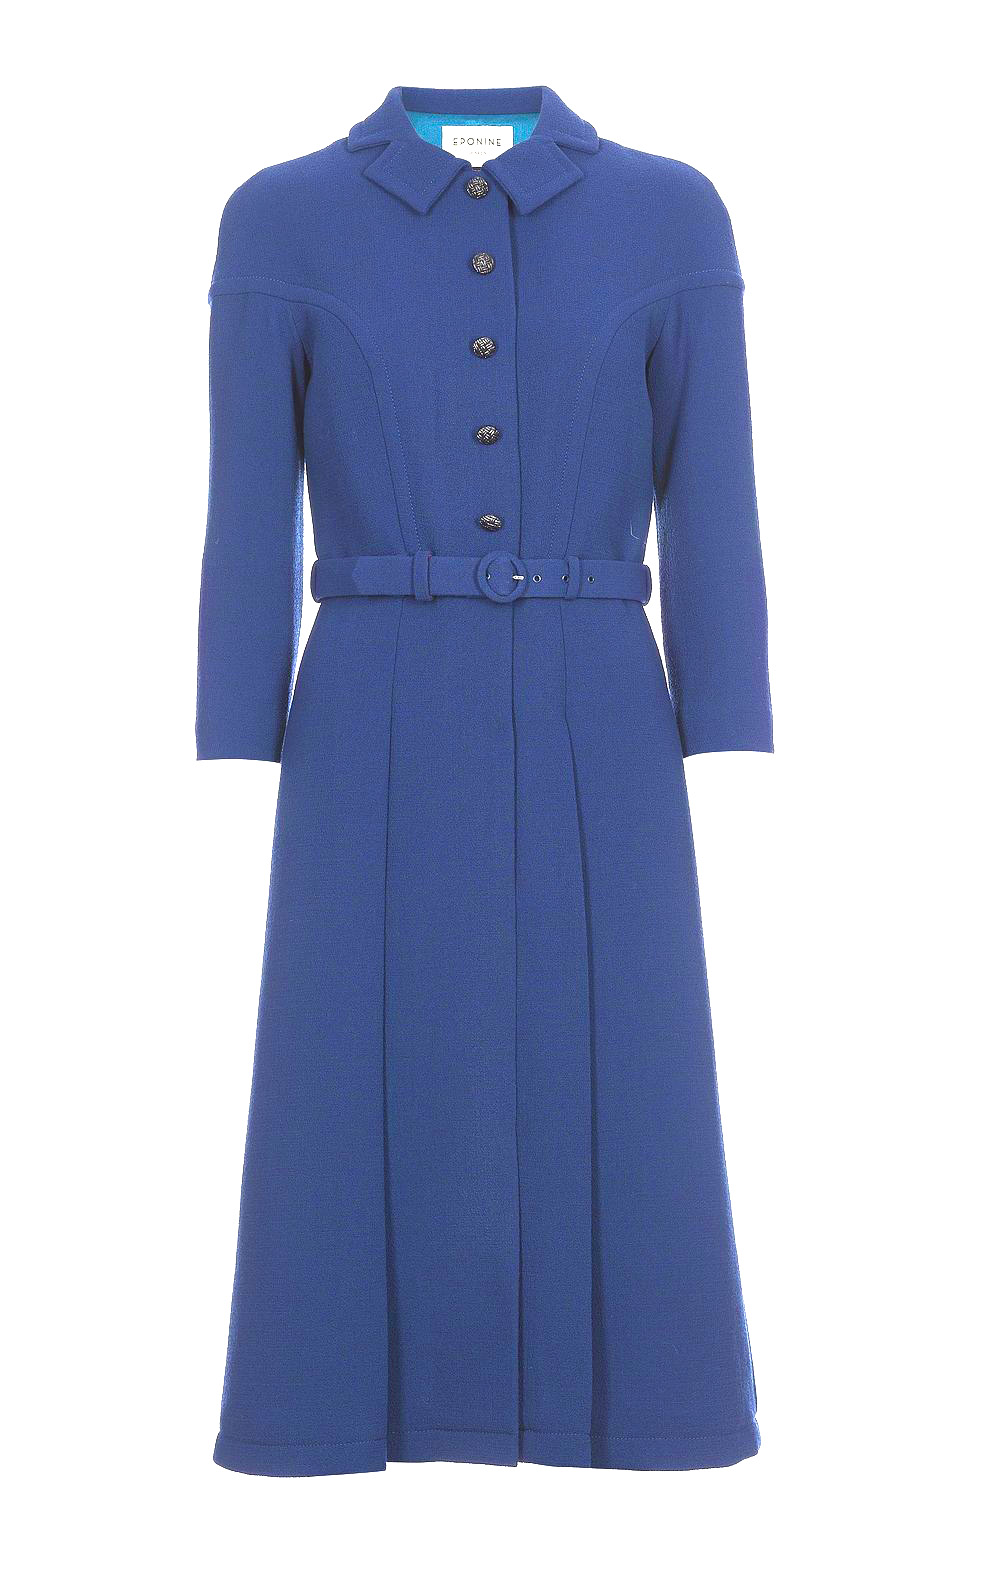 Eponine Blue Coat Dress